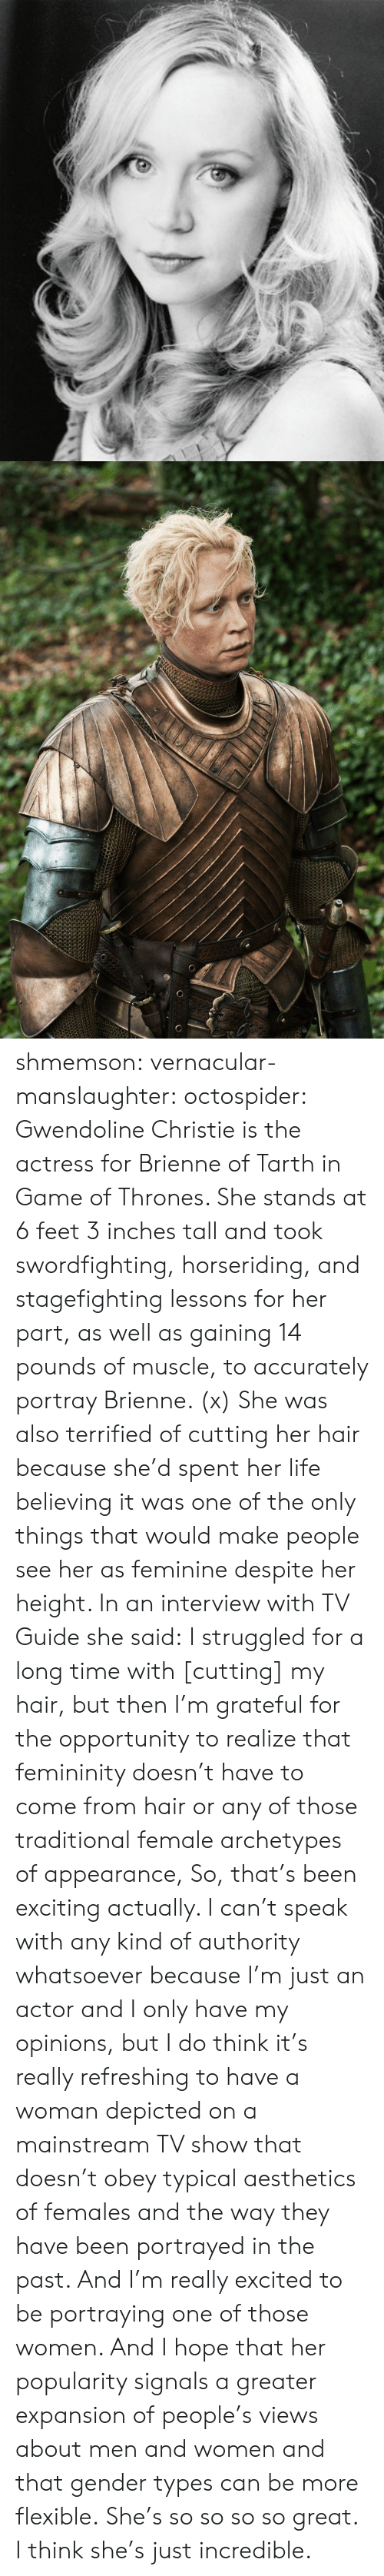 exciting: shmemson:  vernacular-manslaughter:  octospider:  Gwendoline Christie is the actress for Brienne of Tarth in Game of Thrones. She stands at 6 feet 3 inches tall and took swordfighting, horseriding, and stagefighting lessons for her part, as well as gaining 14 pounds of muscle, to accurately portray Brienne. (x)  She was also terrified of cutting her hair because she'd spent her life believing it was one of the only things that would make people see her as feminine despite her height. In an interview with TV Guide she said: I struggled for a long time with [cutting] my hair, but then I'm grateful for the opportunity to realize that femininity doesn't have to come from hair or any of those traditional female archetypes of appearance, So, that's been exciting actually. I can't speak with any kind of authority whatsoever because I'm just an actor and I only have my opinions, but I do think it's really refreshing to have a woman depicted on a mainstream TV show that doesn't obey typical aesthetics of females and the way they have been portrayed in the past. And I'm really excited to be portraying one of those women. And I hope that her popularity signals a greater expansion of people's views about men and women and that gender types can be more flexible.  She's so so so so great. I think she's just incredible.